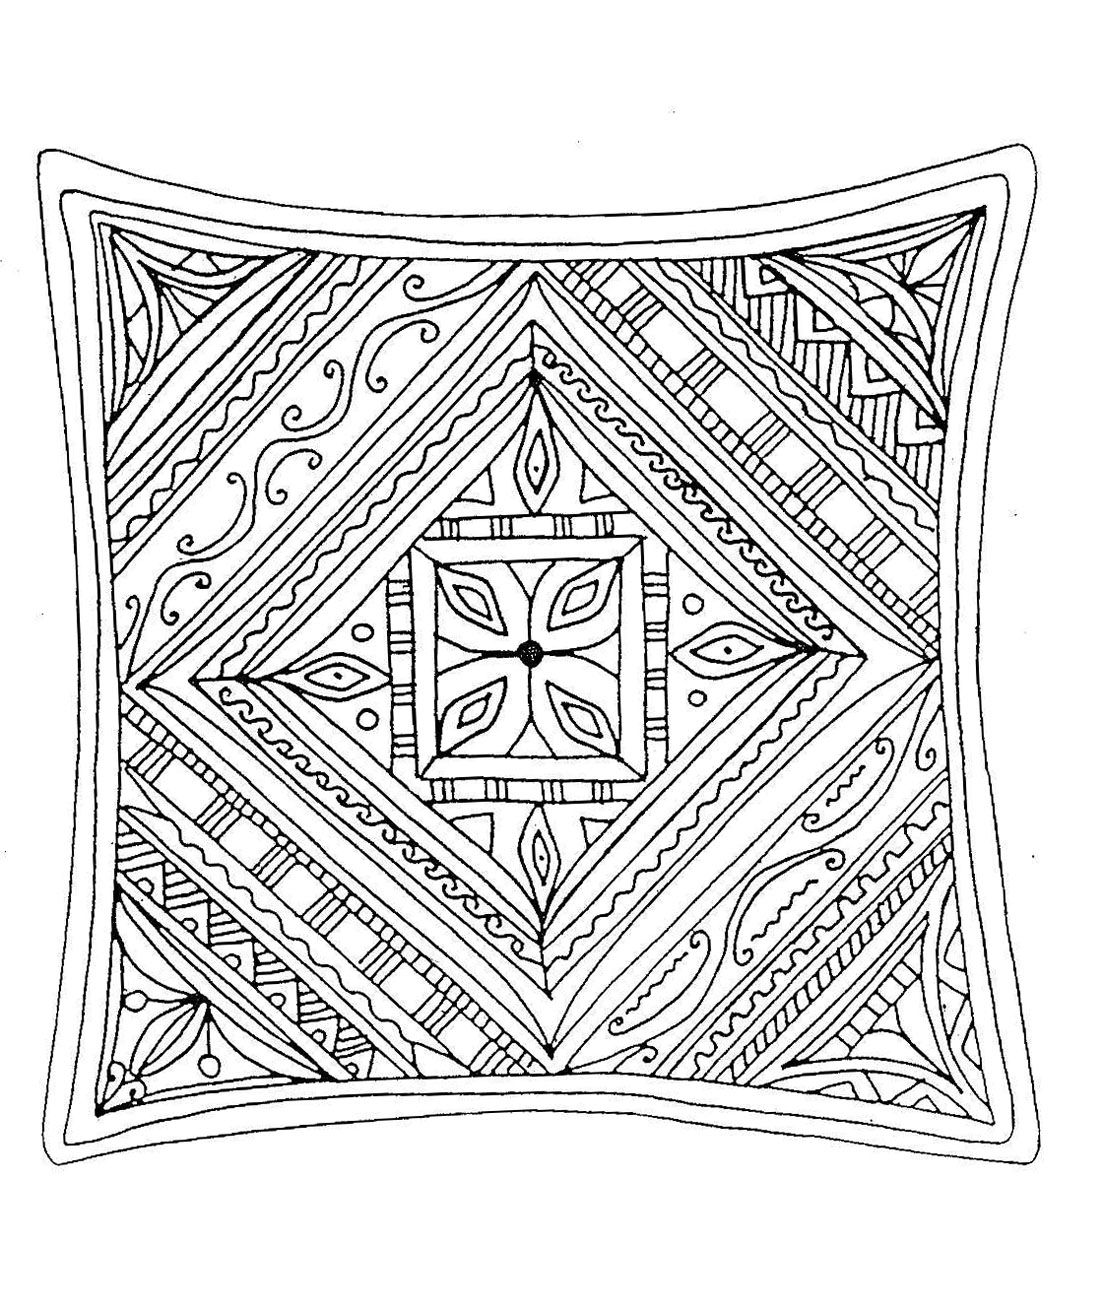 Free coloring page «coloring-for-adults-5». Relatively simple but abstract coloring page, it's up to you to find the right colors to get the best harmony